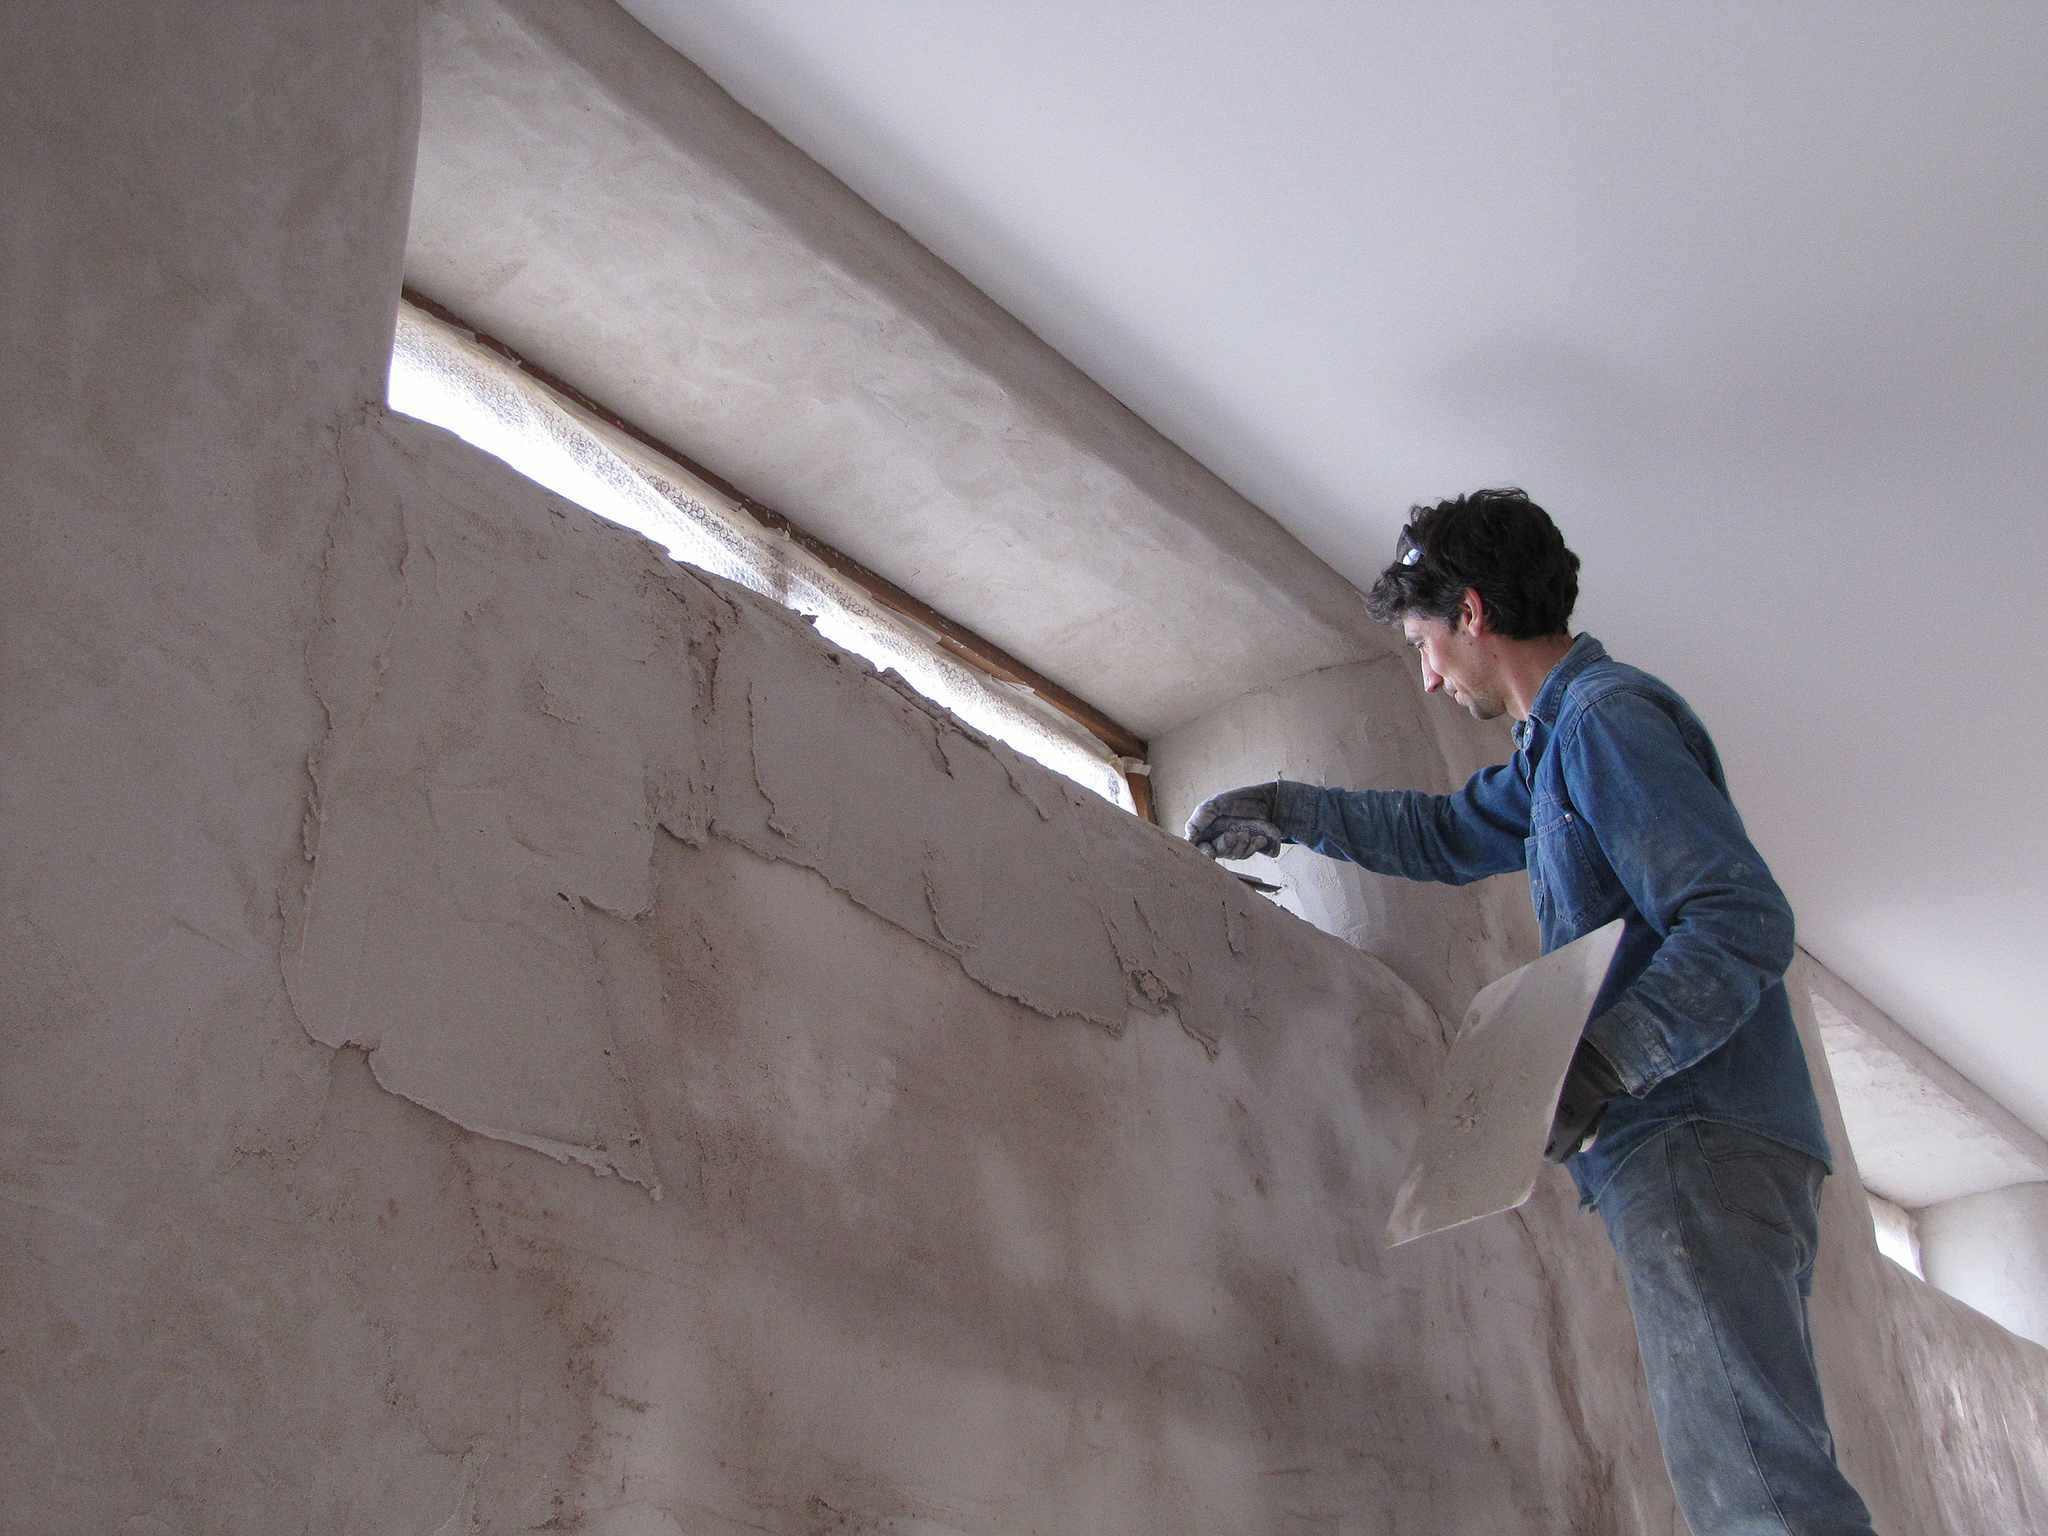 Man applying plaster to a wall